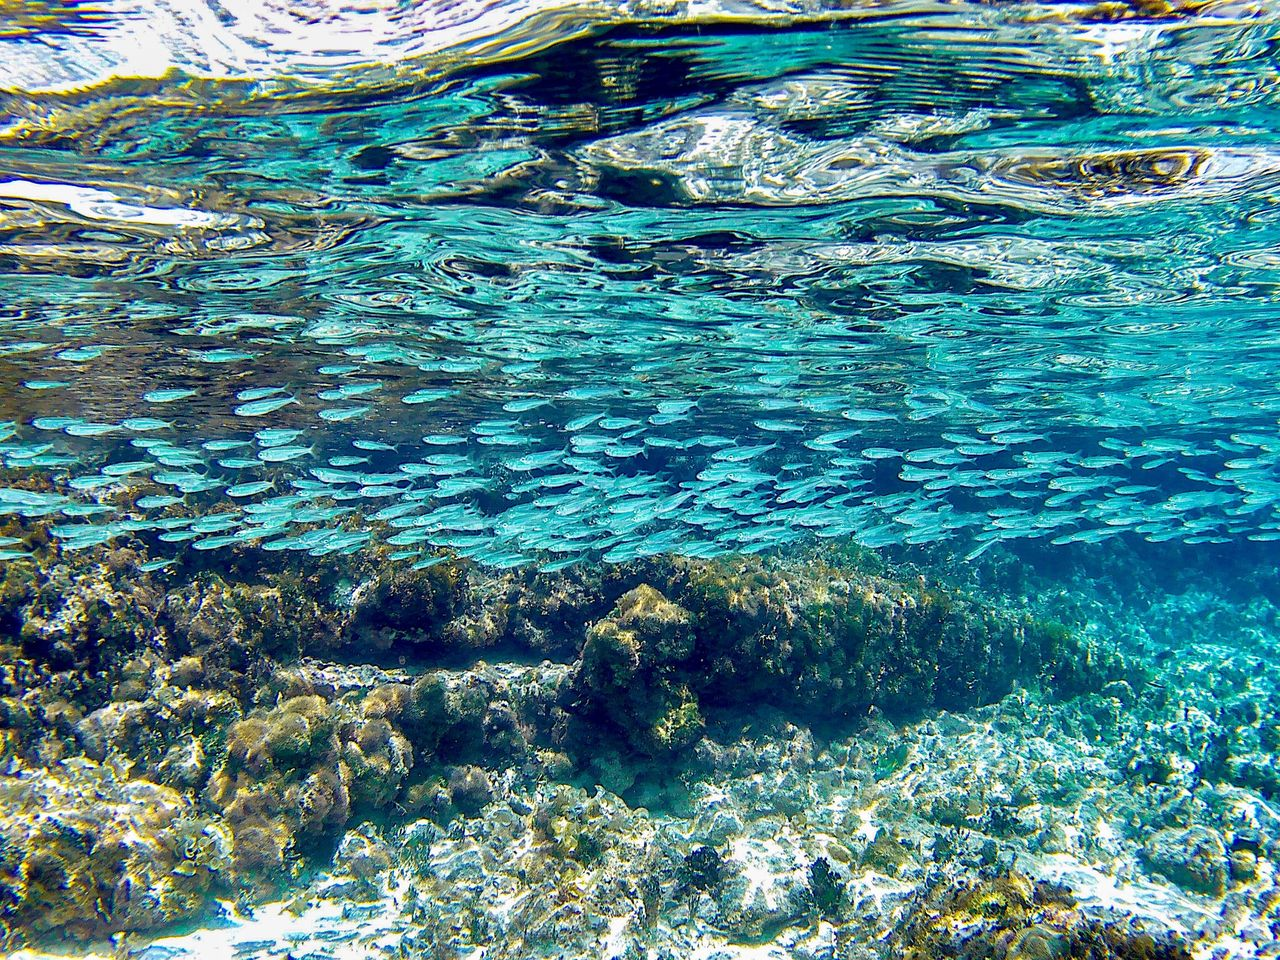 The Mesoamerican Reef, the second-largest coral reef in the world, provides habitat for over 500 species of fish.